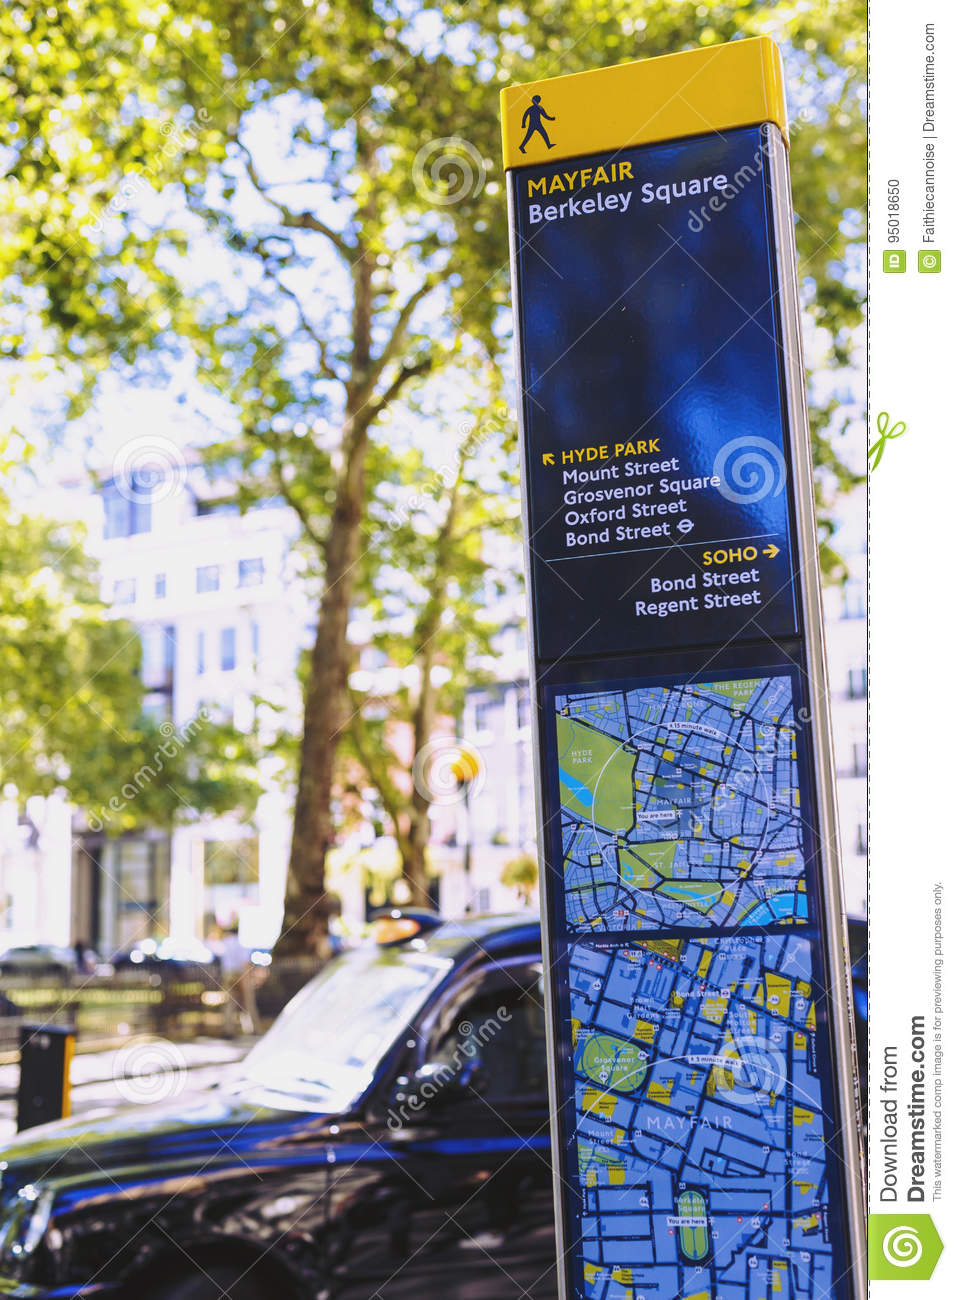 London City Centre Map.Mayfair Road Sign With Map In London City Centre Editorial Image